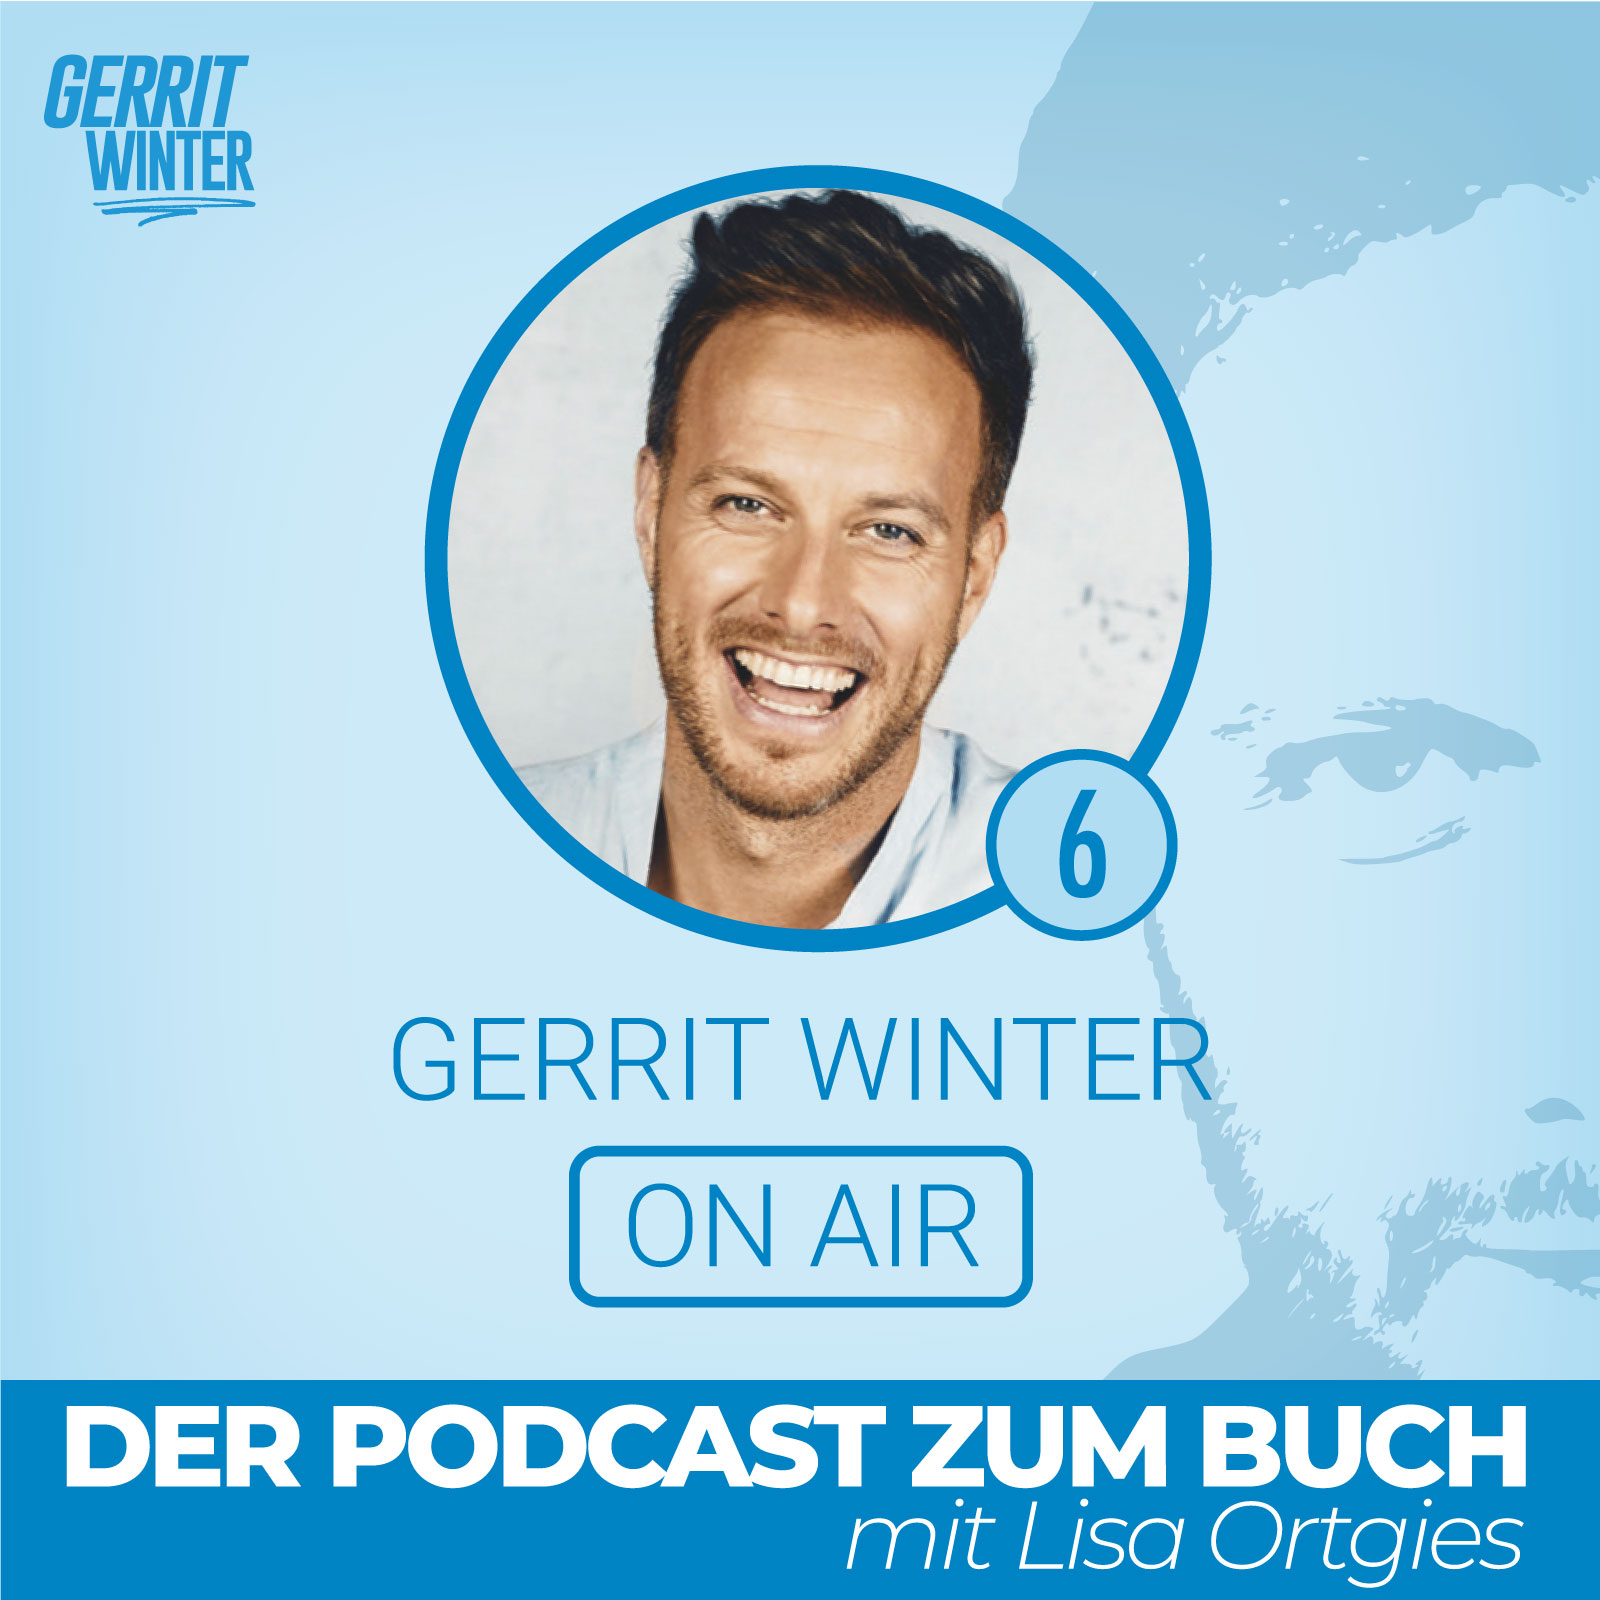 Gerrit Winter podcast mit Lisa Ortgies